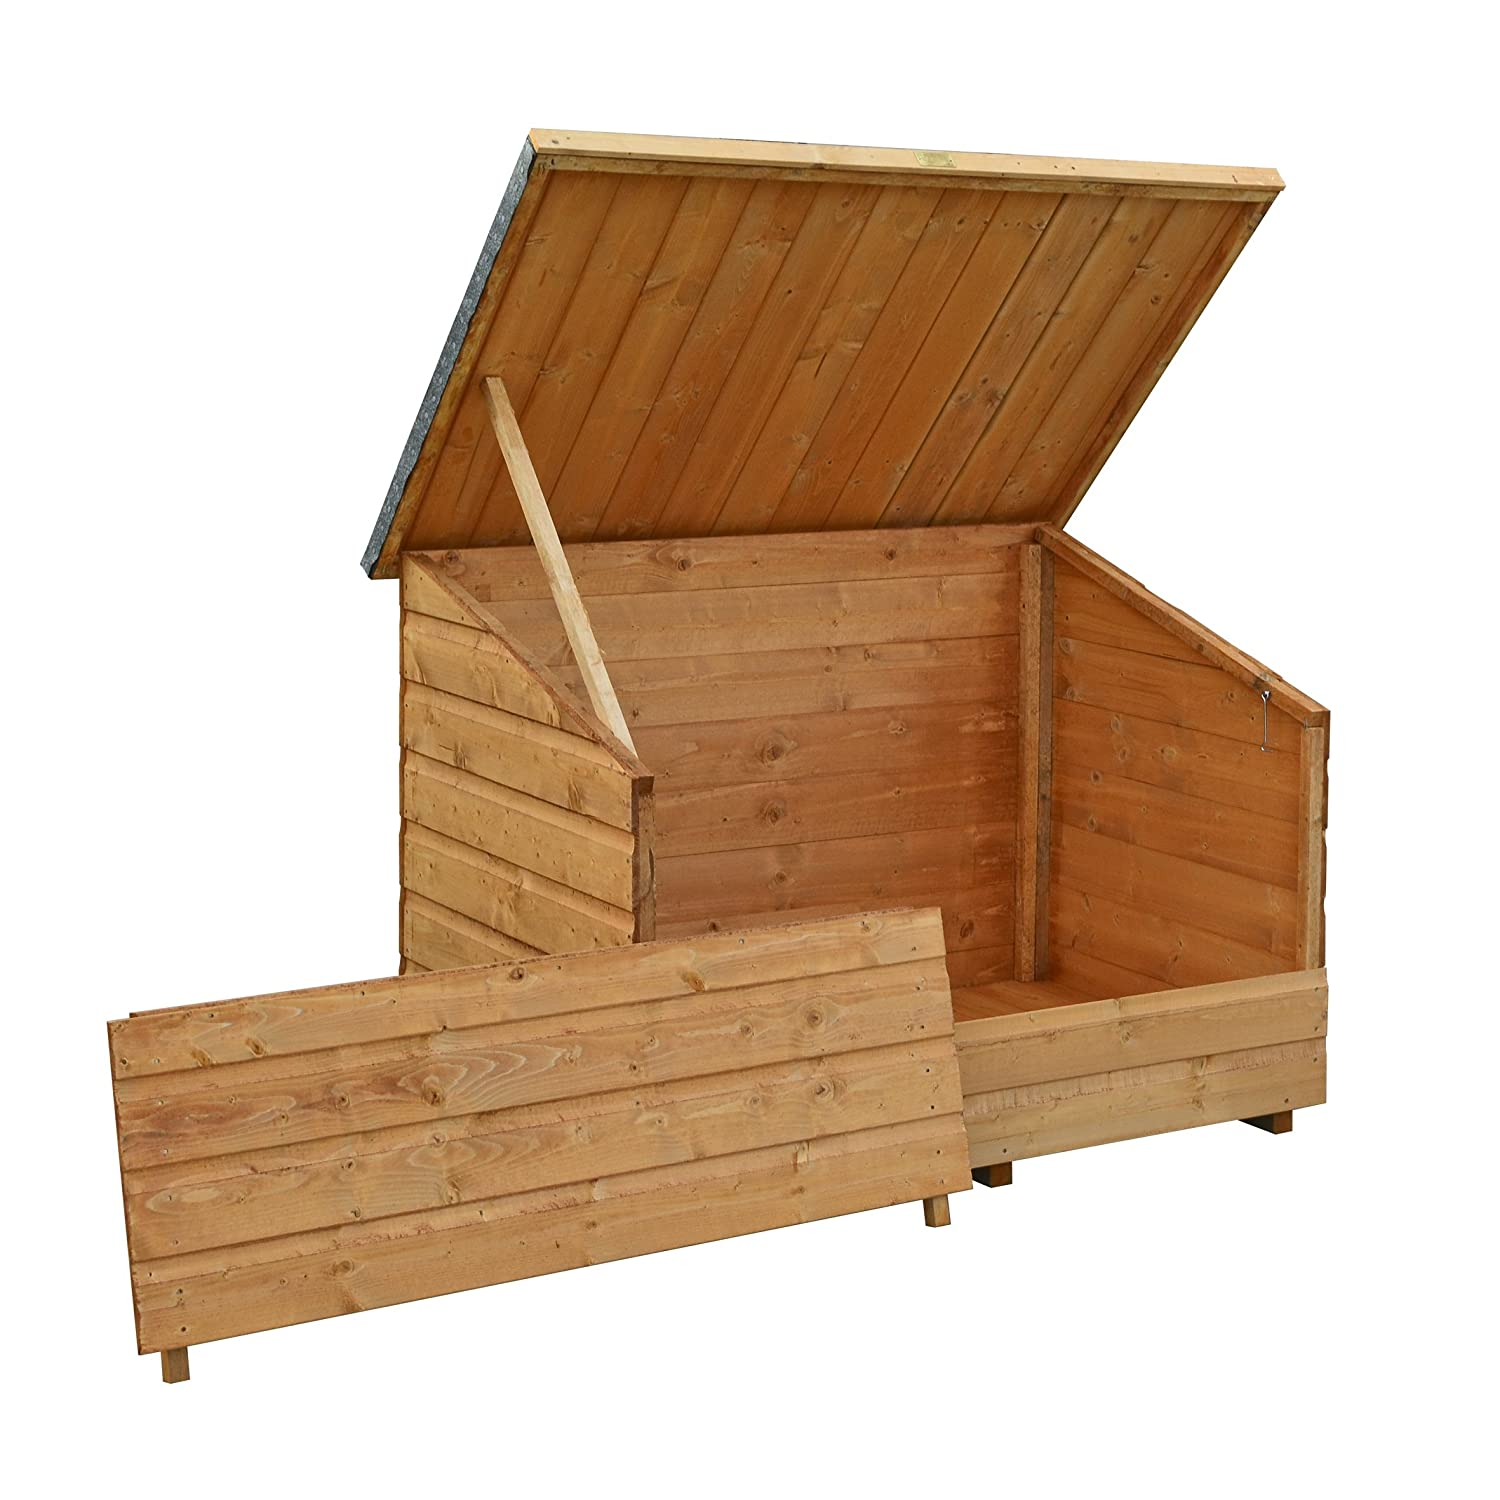 Bosmere GC1T Rowlinson Wooden Garden Chest with Lifting Lid, Honey-Brown Finish A047